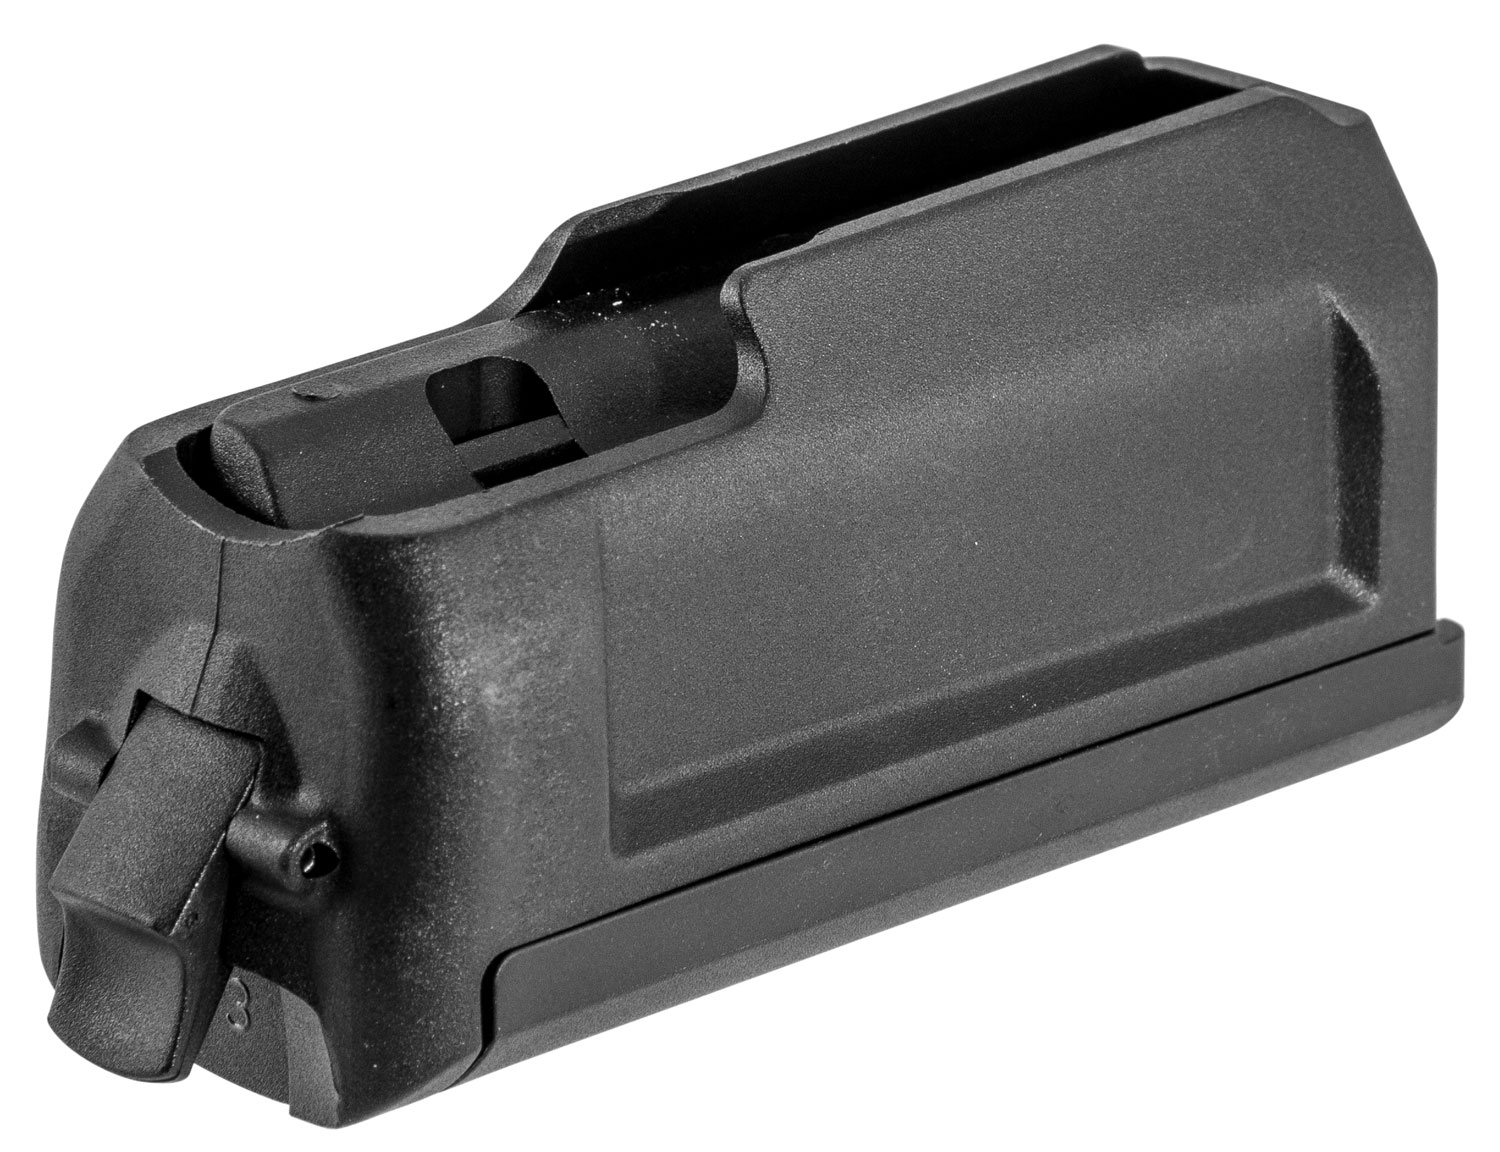 MAGAZINE AMERICAN RIFLE S/A - 90689 | SHORT ACTION MAGAZINE